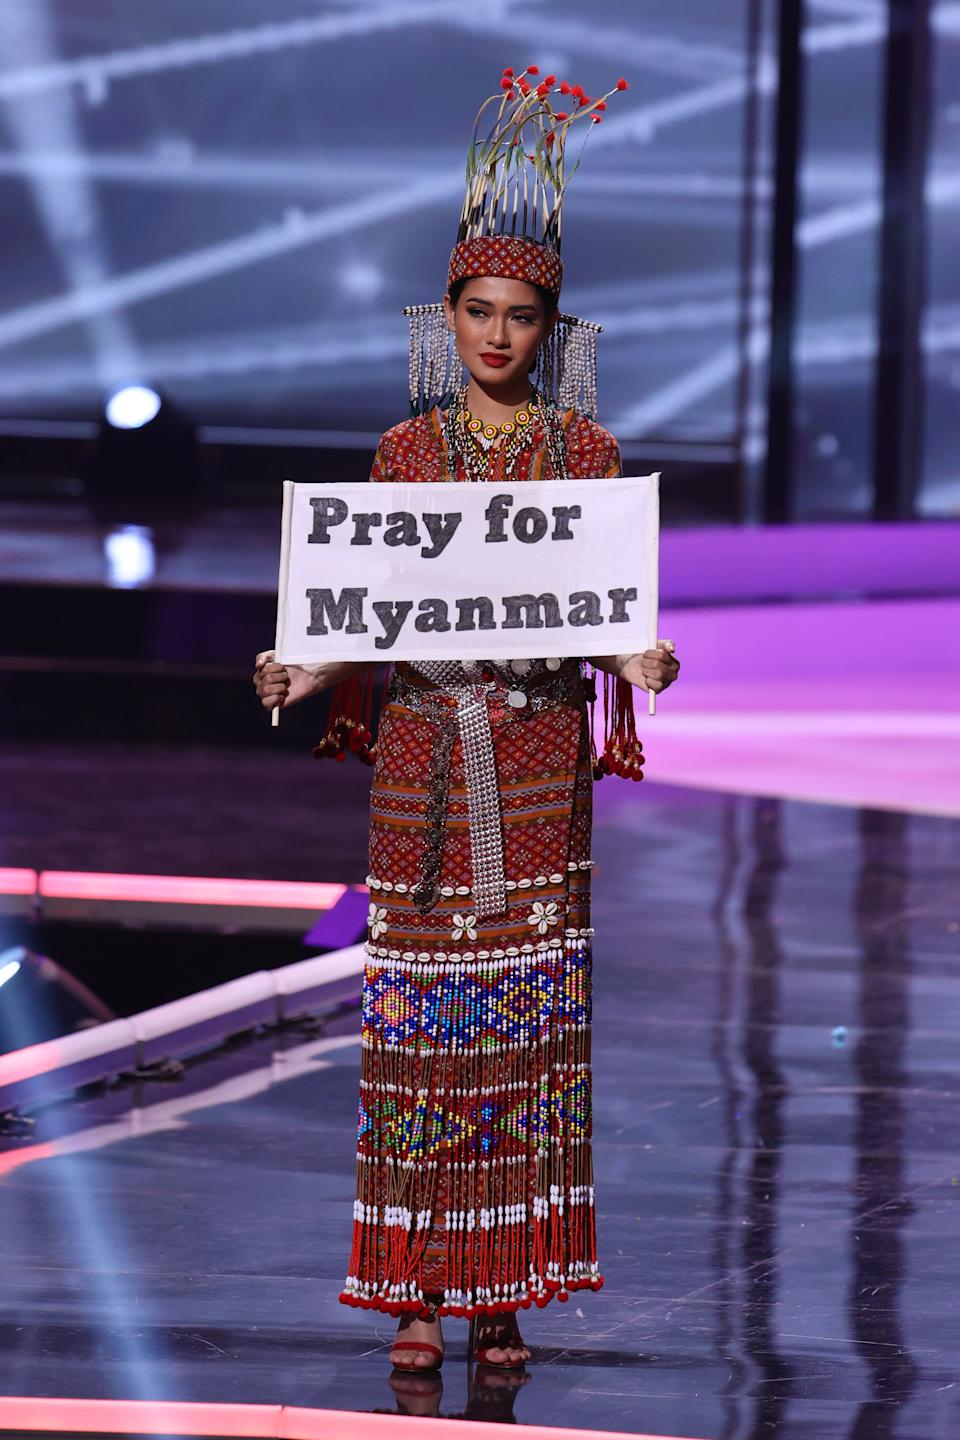 HOLLYWOOD, FLORIDA - MAY 13: Miss Myanmar Thuzar Wint Lwin appears onstage at the 69th Miss Universe National Costume Show at Seminole Hard Rock Hotel & Casino on May 13, 2021 in Hollywood, Florida. (Photo by Rodrigo Varela/Getty Images)